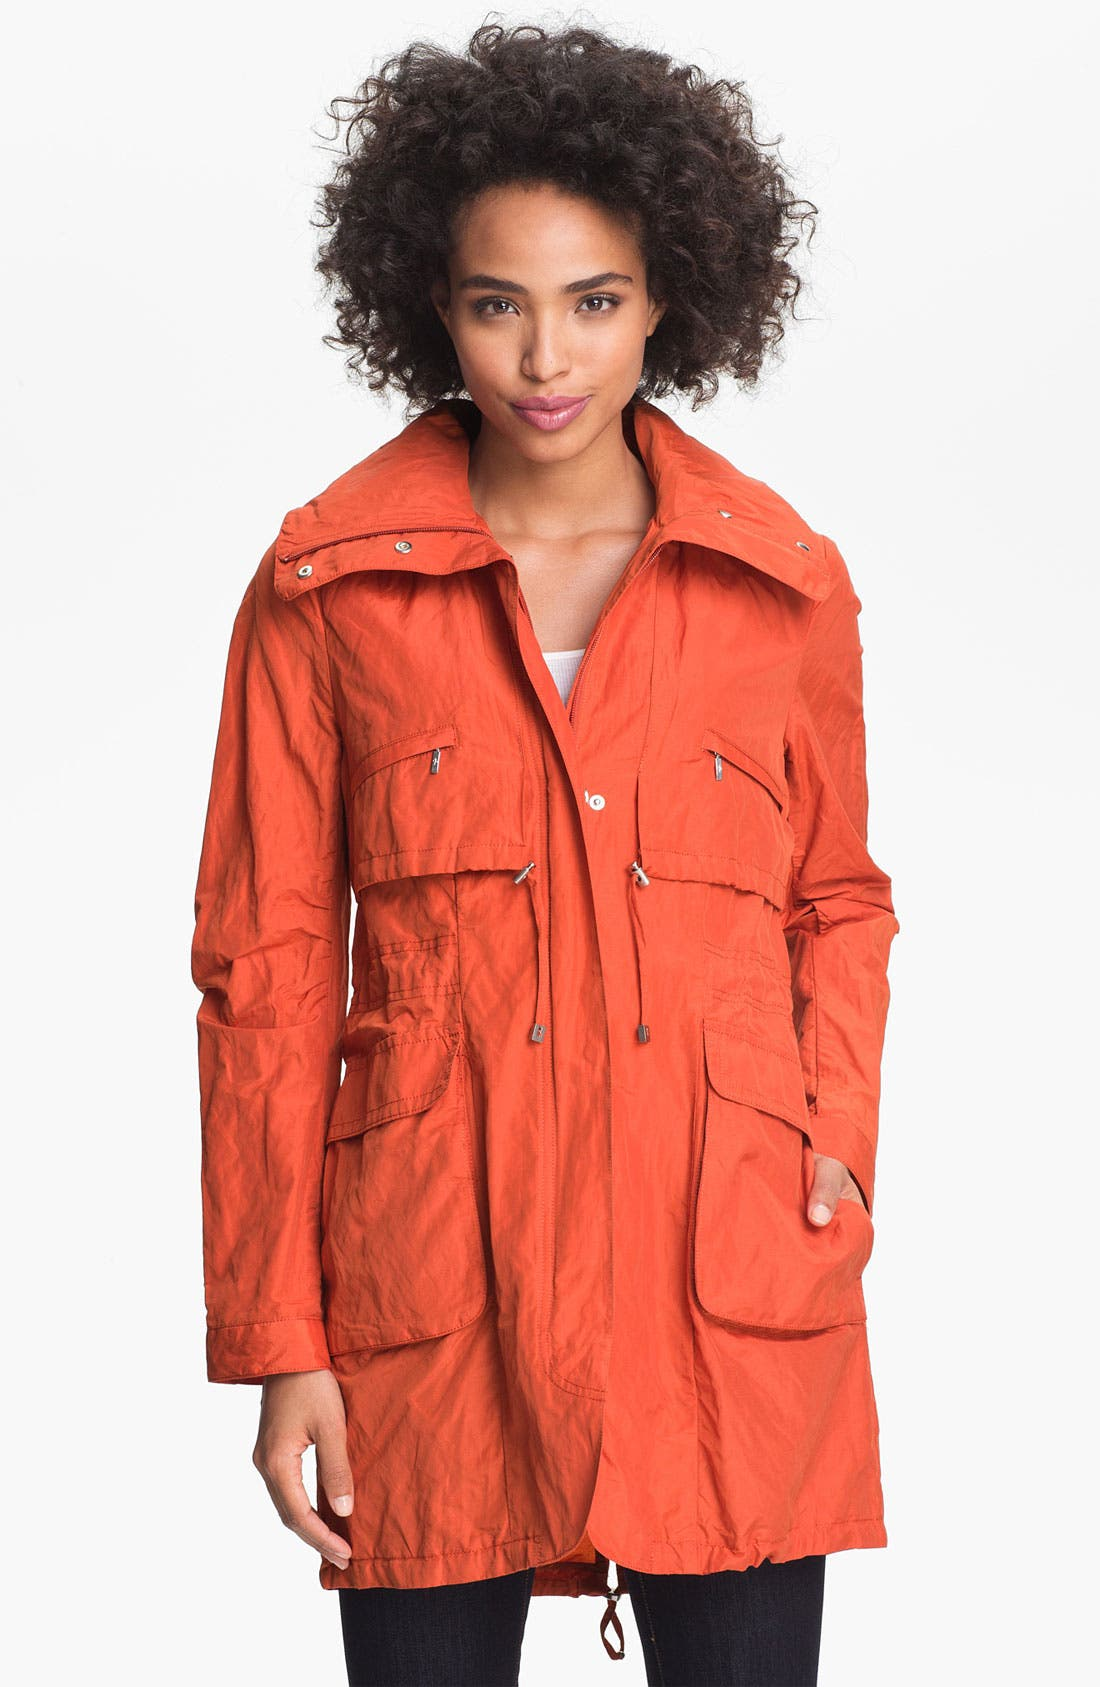 Alternate Image 1 Selected - Cole Haan Packable Jacket